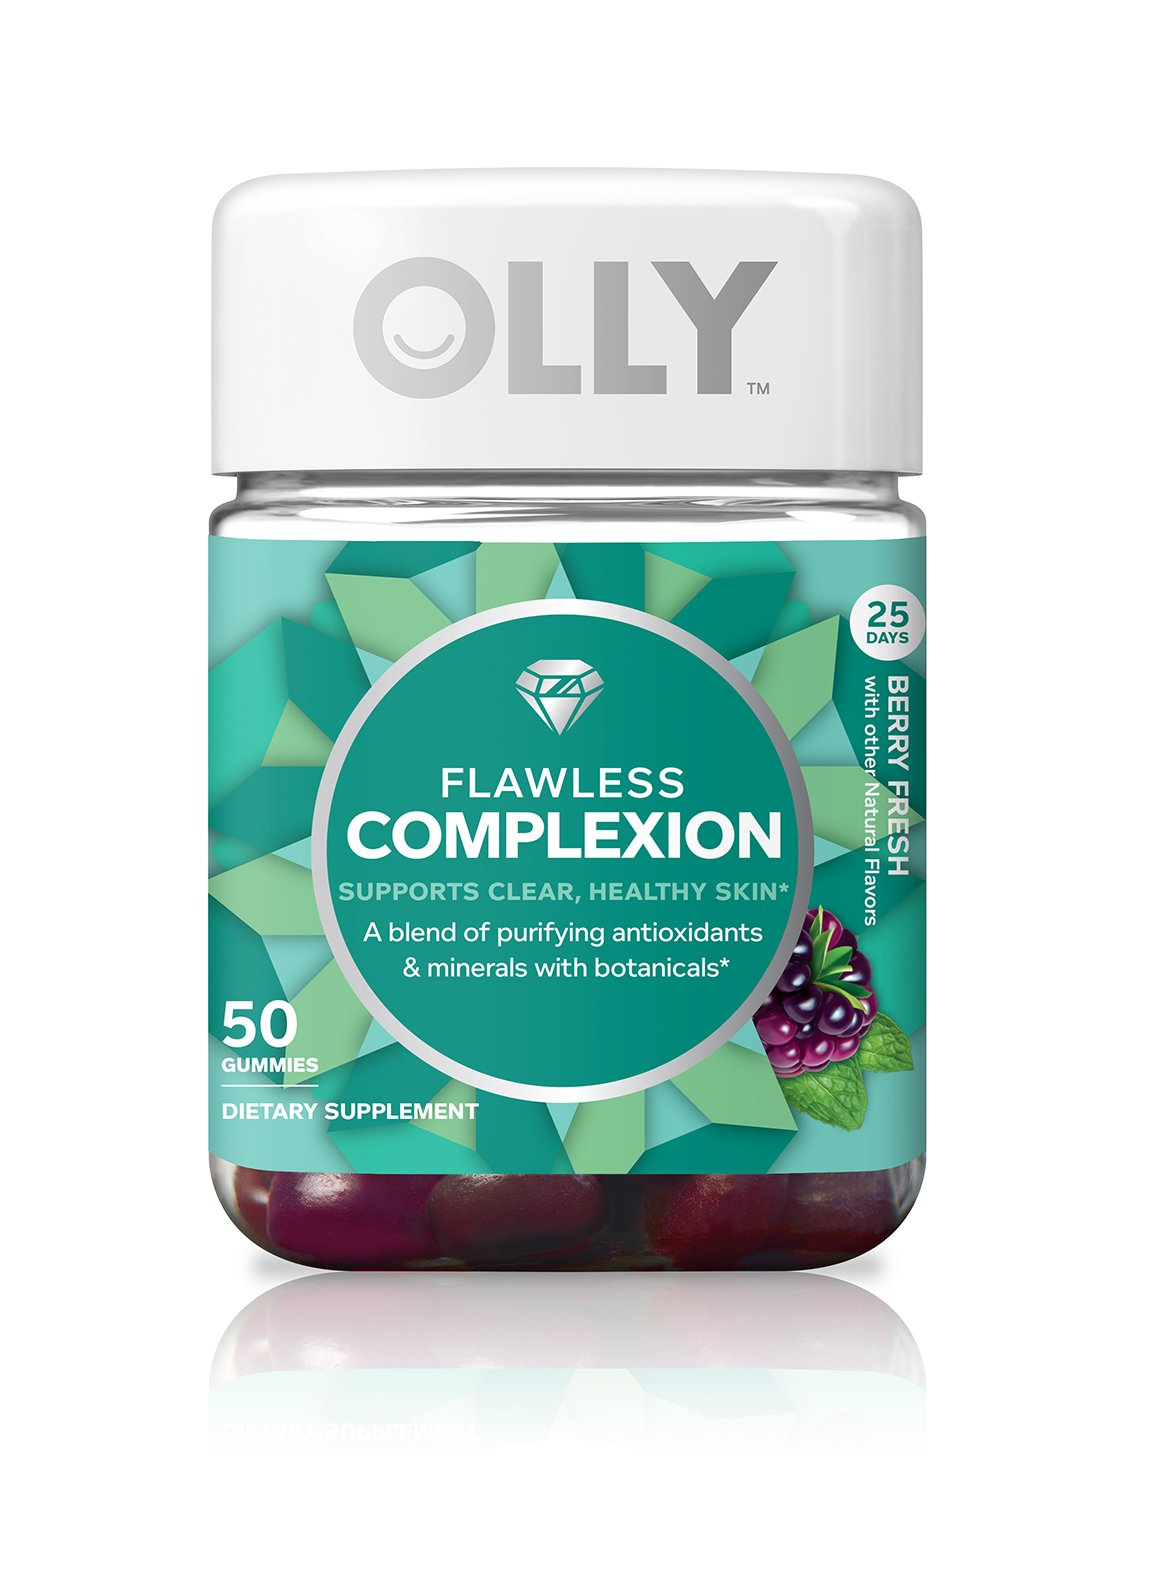 OLLY Flawless Complexion Gummy Supplement, with antioxidants; Berry Fresh; 50 count, 25 day supply (packaging may vary)